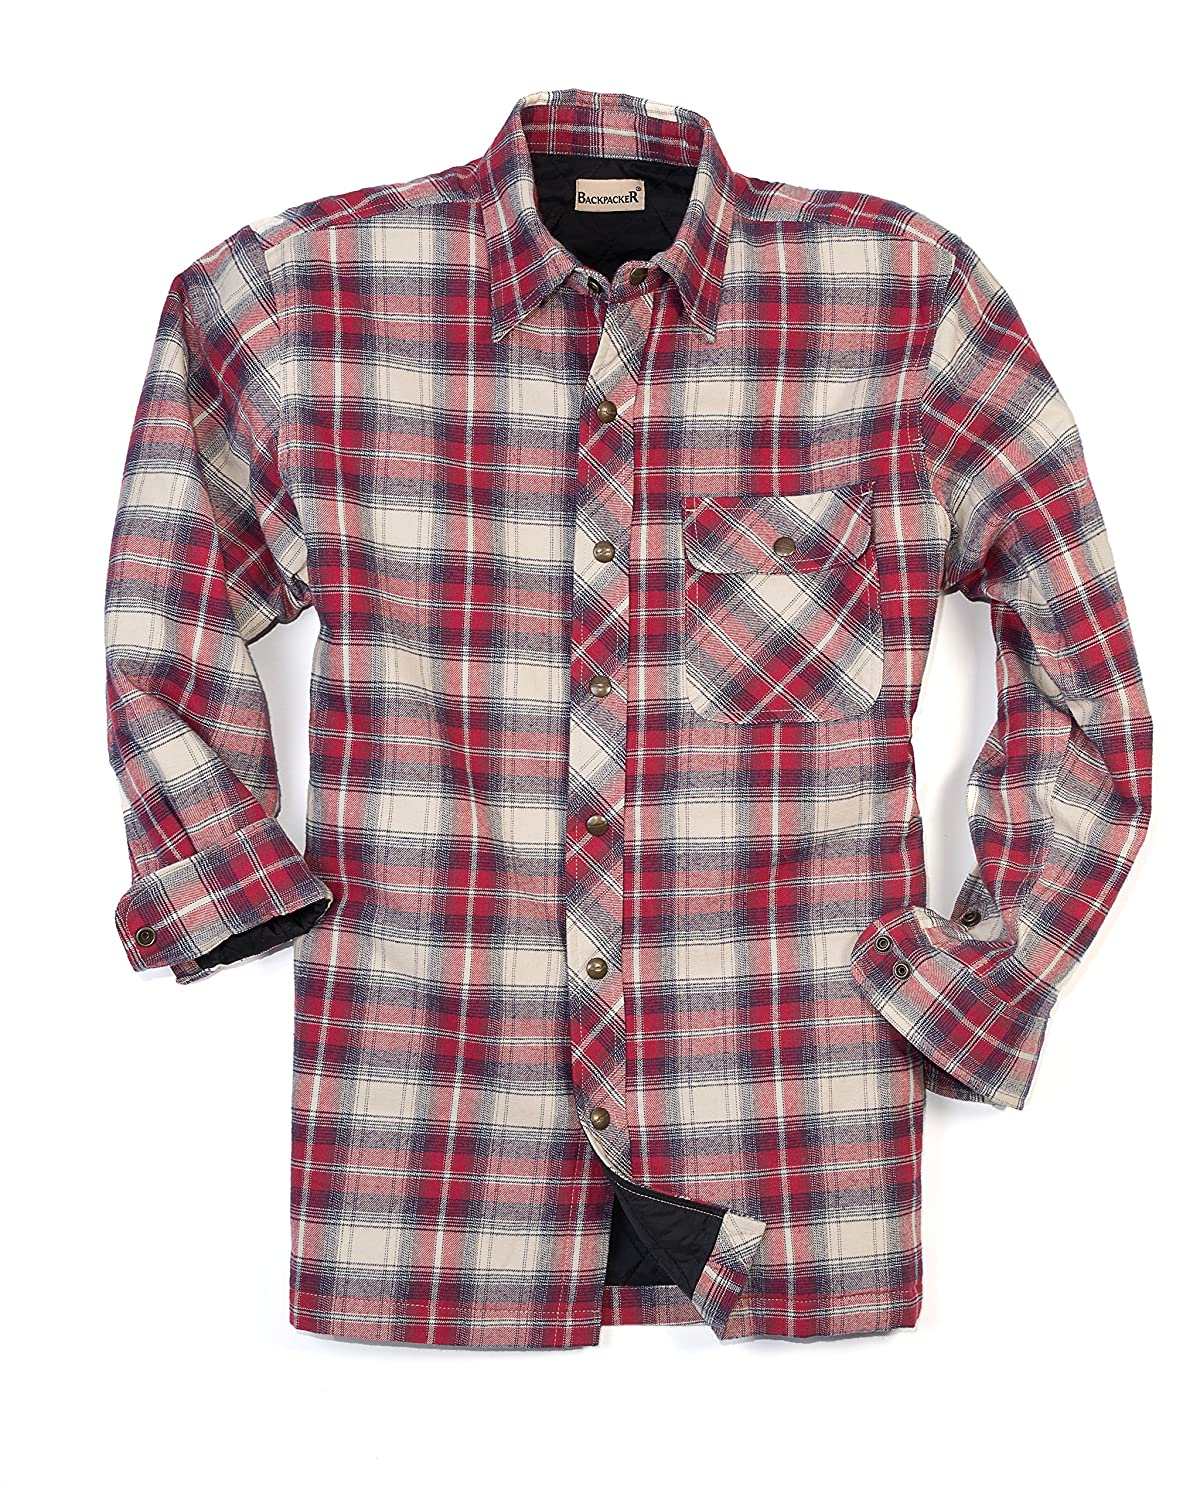 Amazon.com: Backpacker Men's Flannel/Quilt Lined Shirt Jacket ...